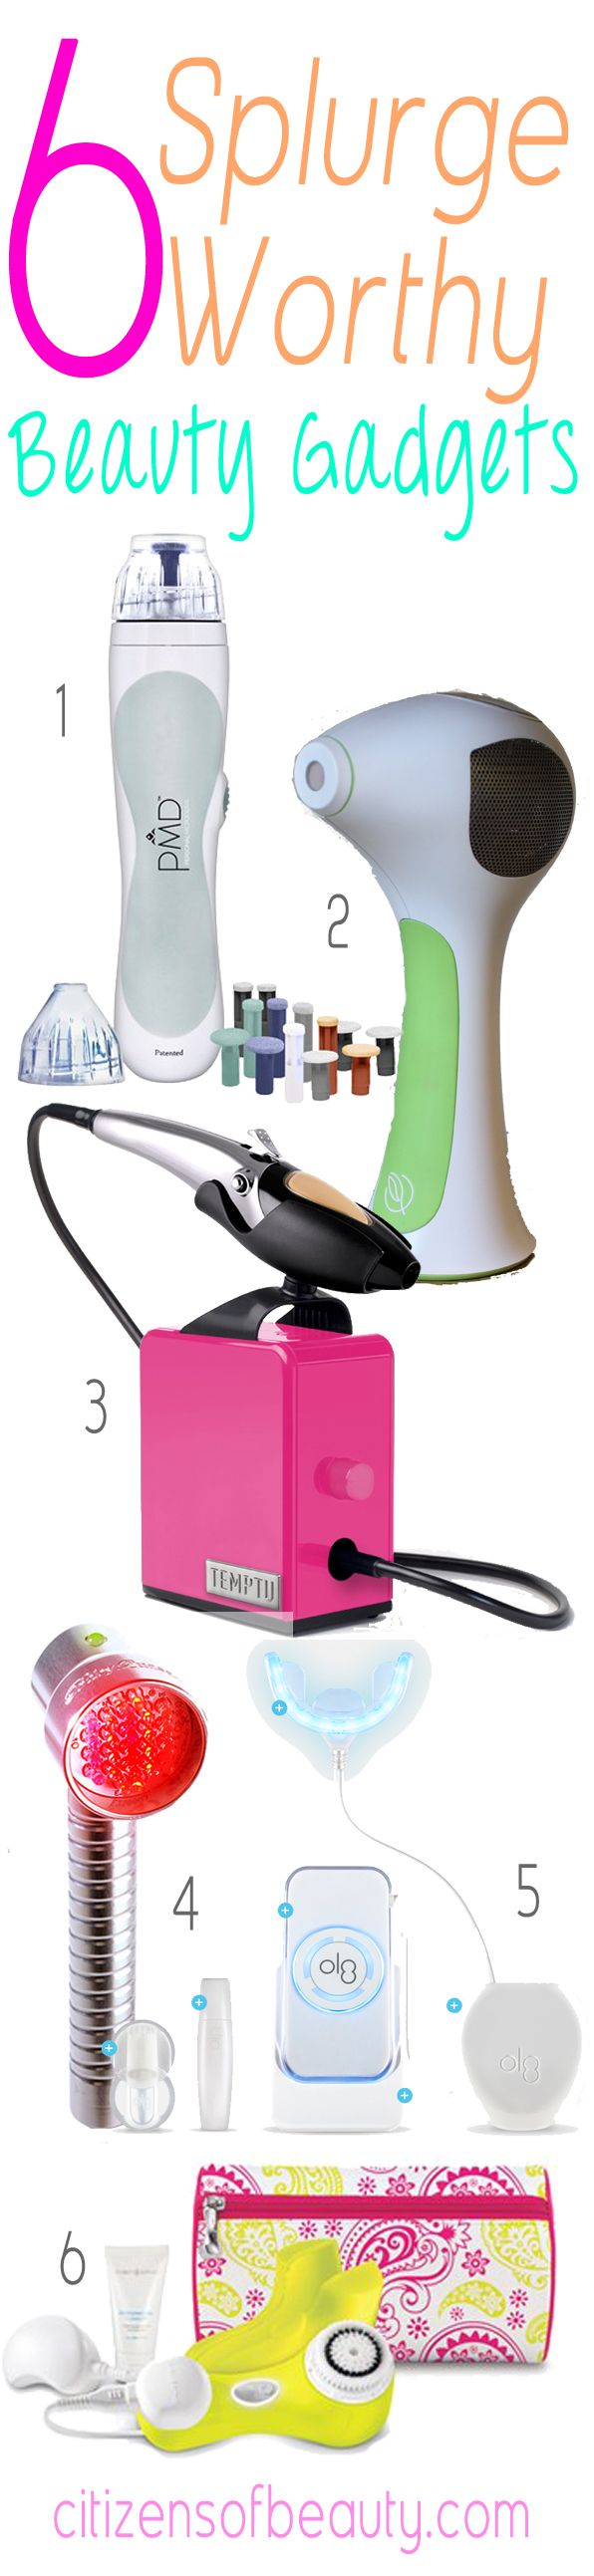 With so many beauty gadgets on the market, it's hard to know which ones are worth the splurge. Here are 6 that are worth the worth.